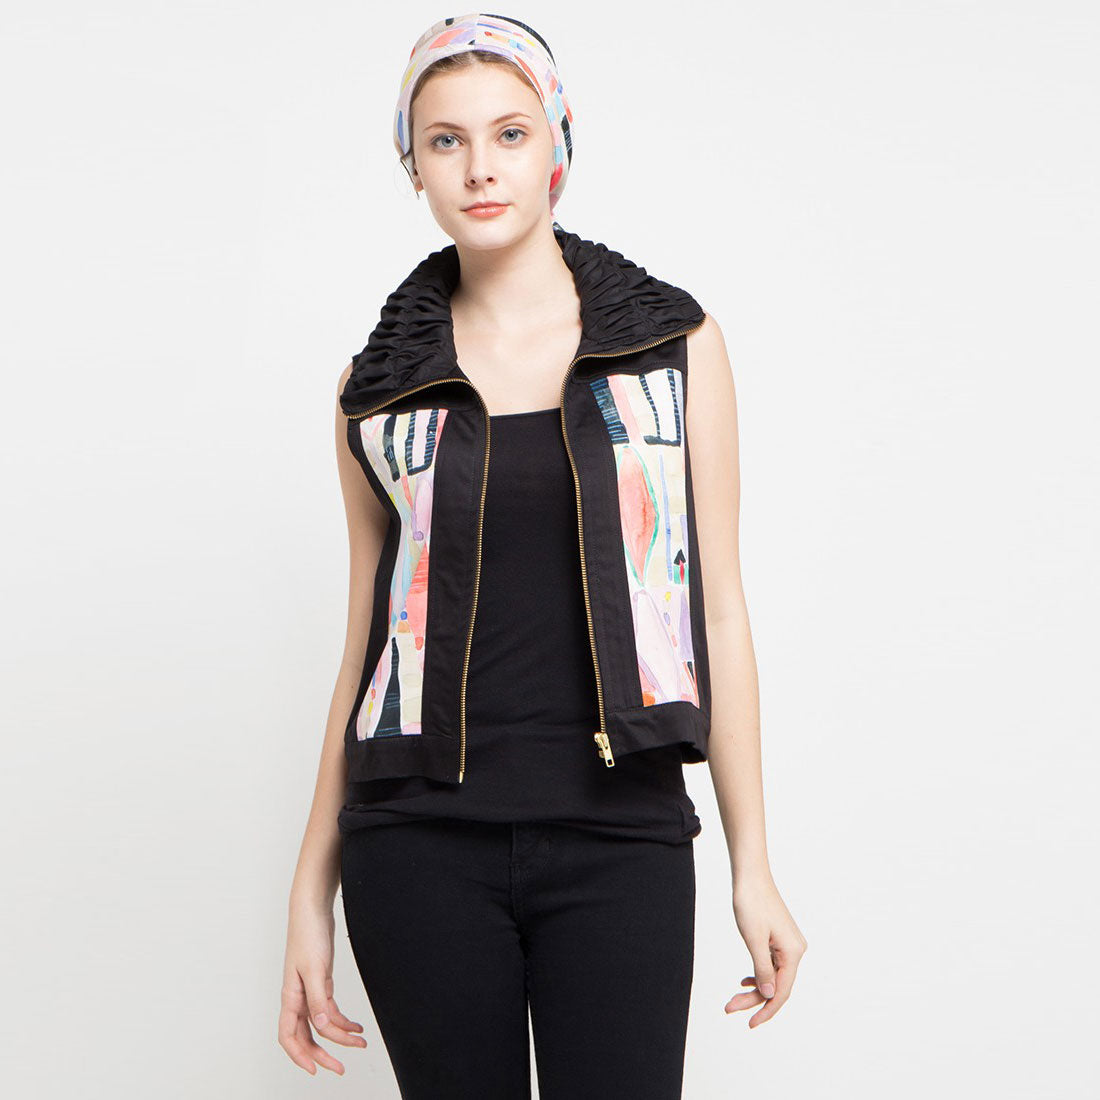 Boho Chic Vest with Abstraction Art-2Madison Avenue Indonesia